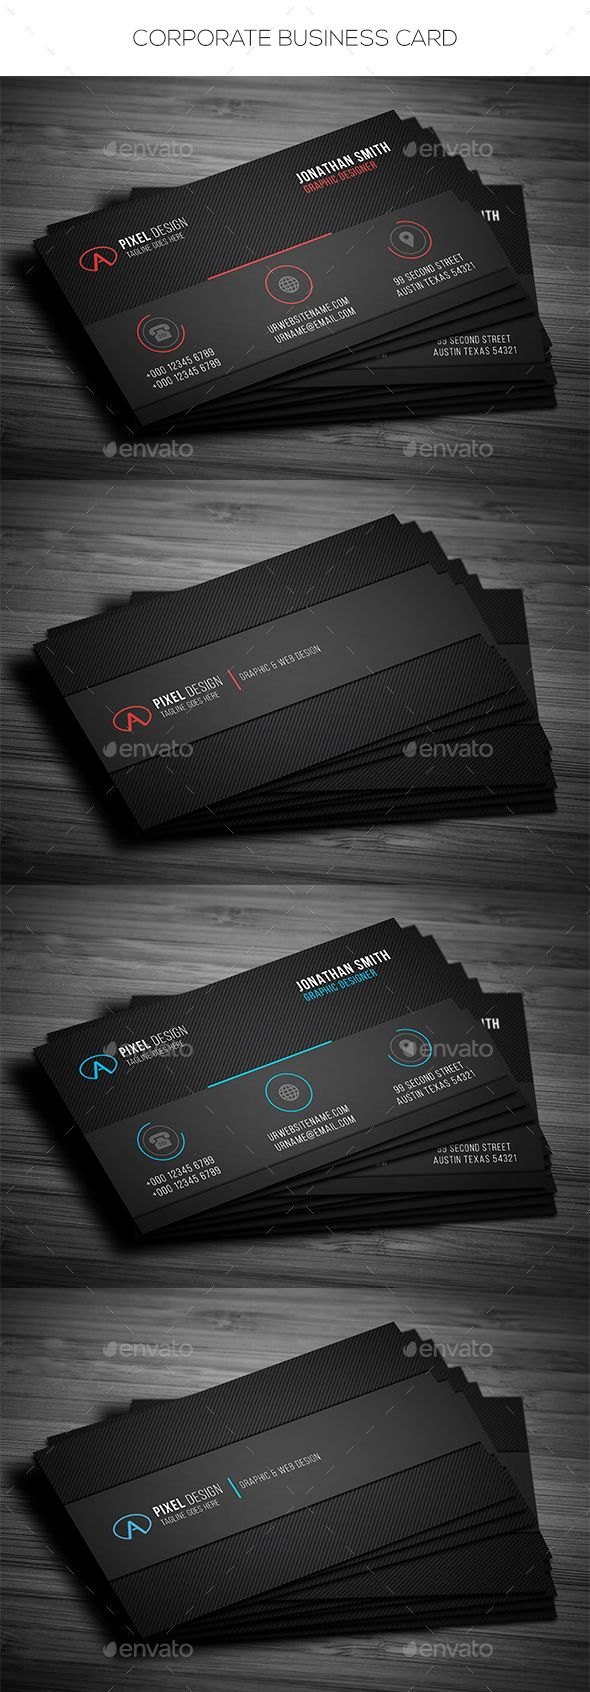 26 best cartes de visita images on pinterest business card design corporate business card template psd reheart Images